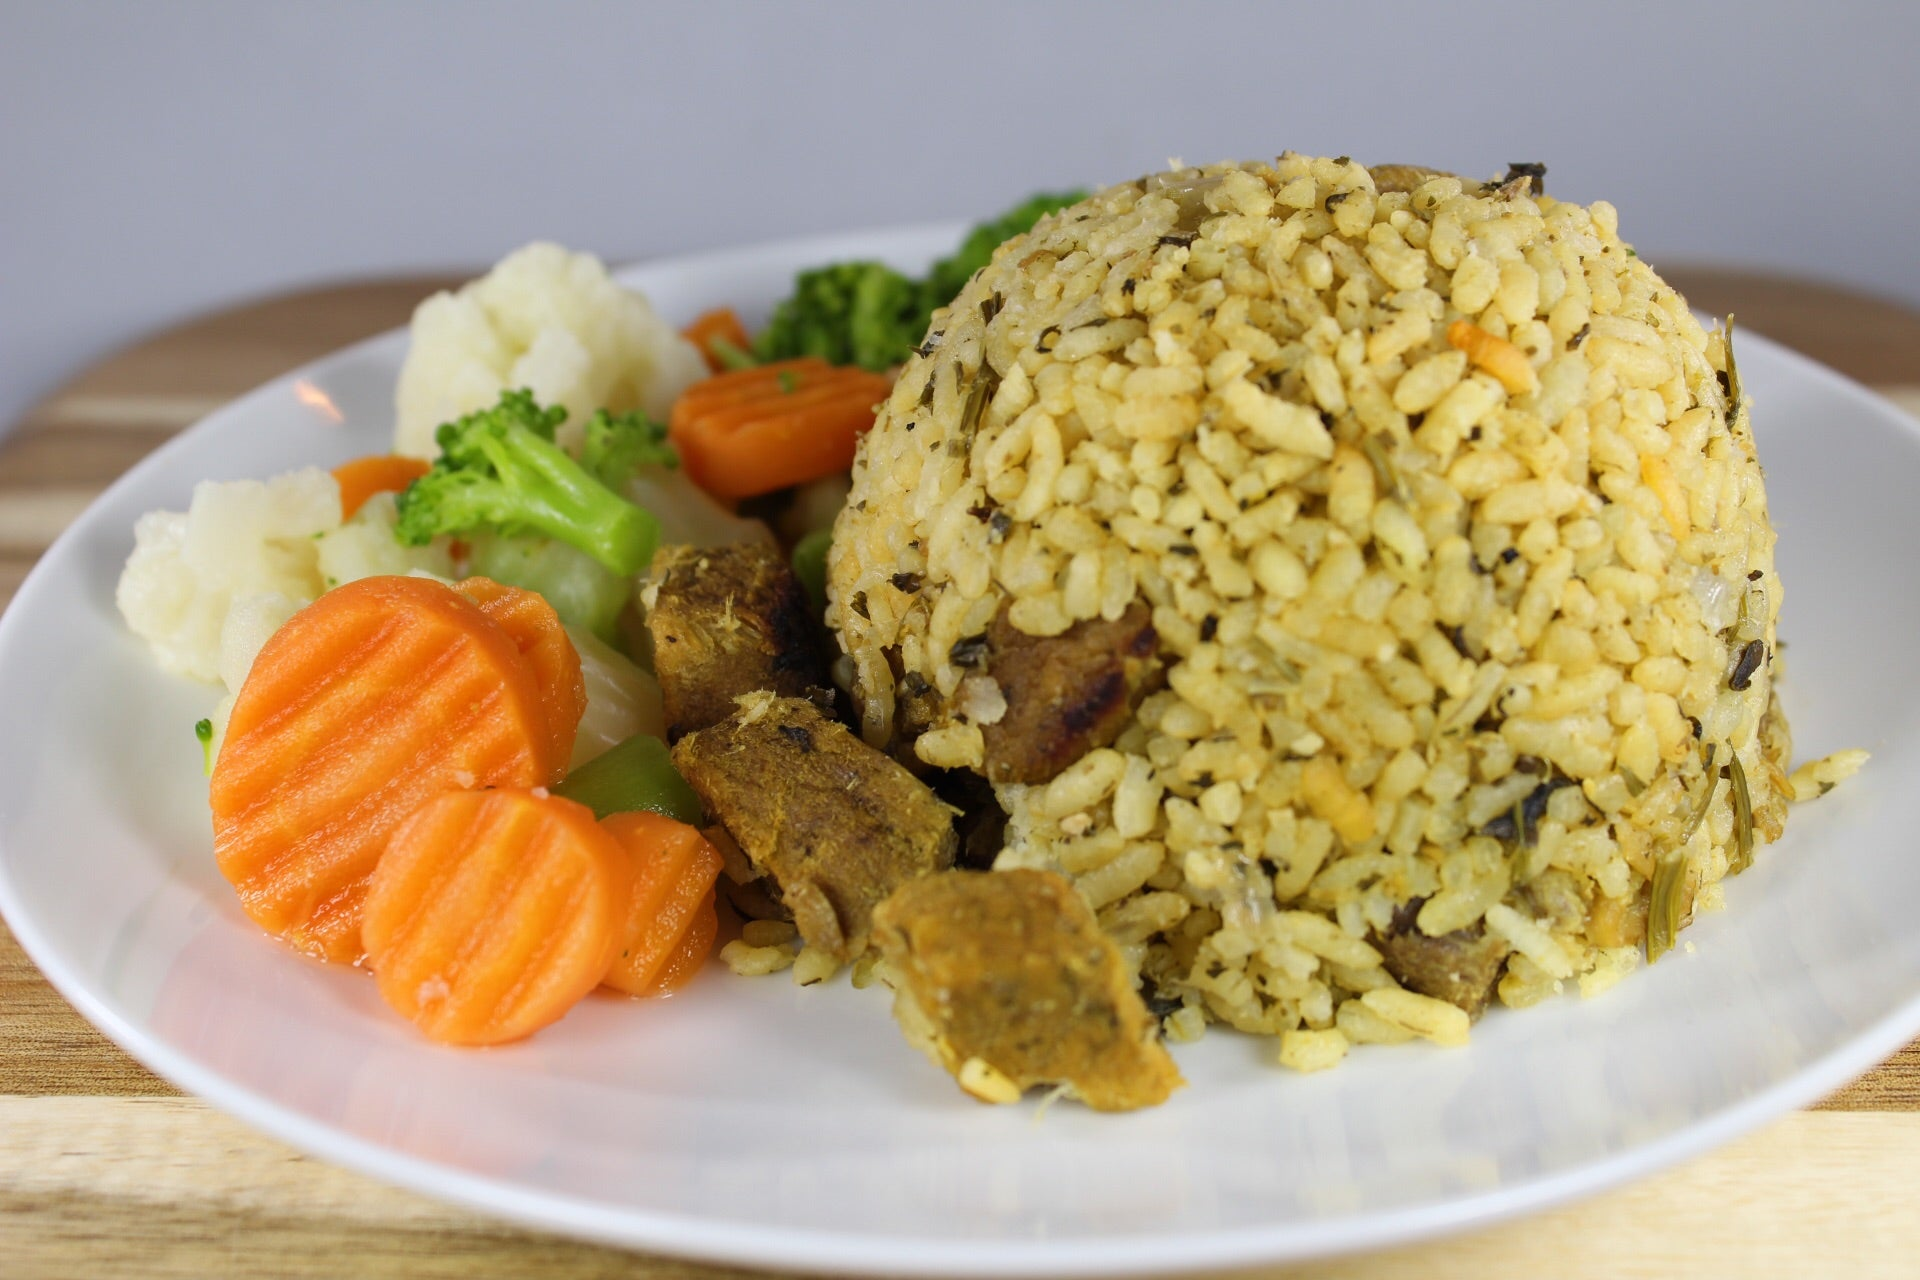 Arroz con Cerdo y Cilantro y Vegetales / Rice with Pork, Cilantro and Vegetables